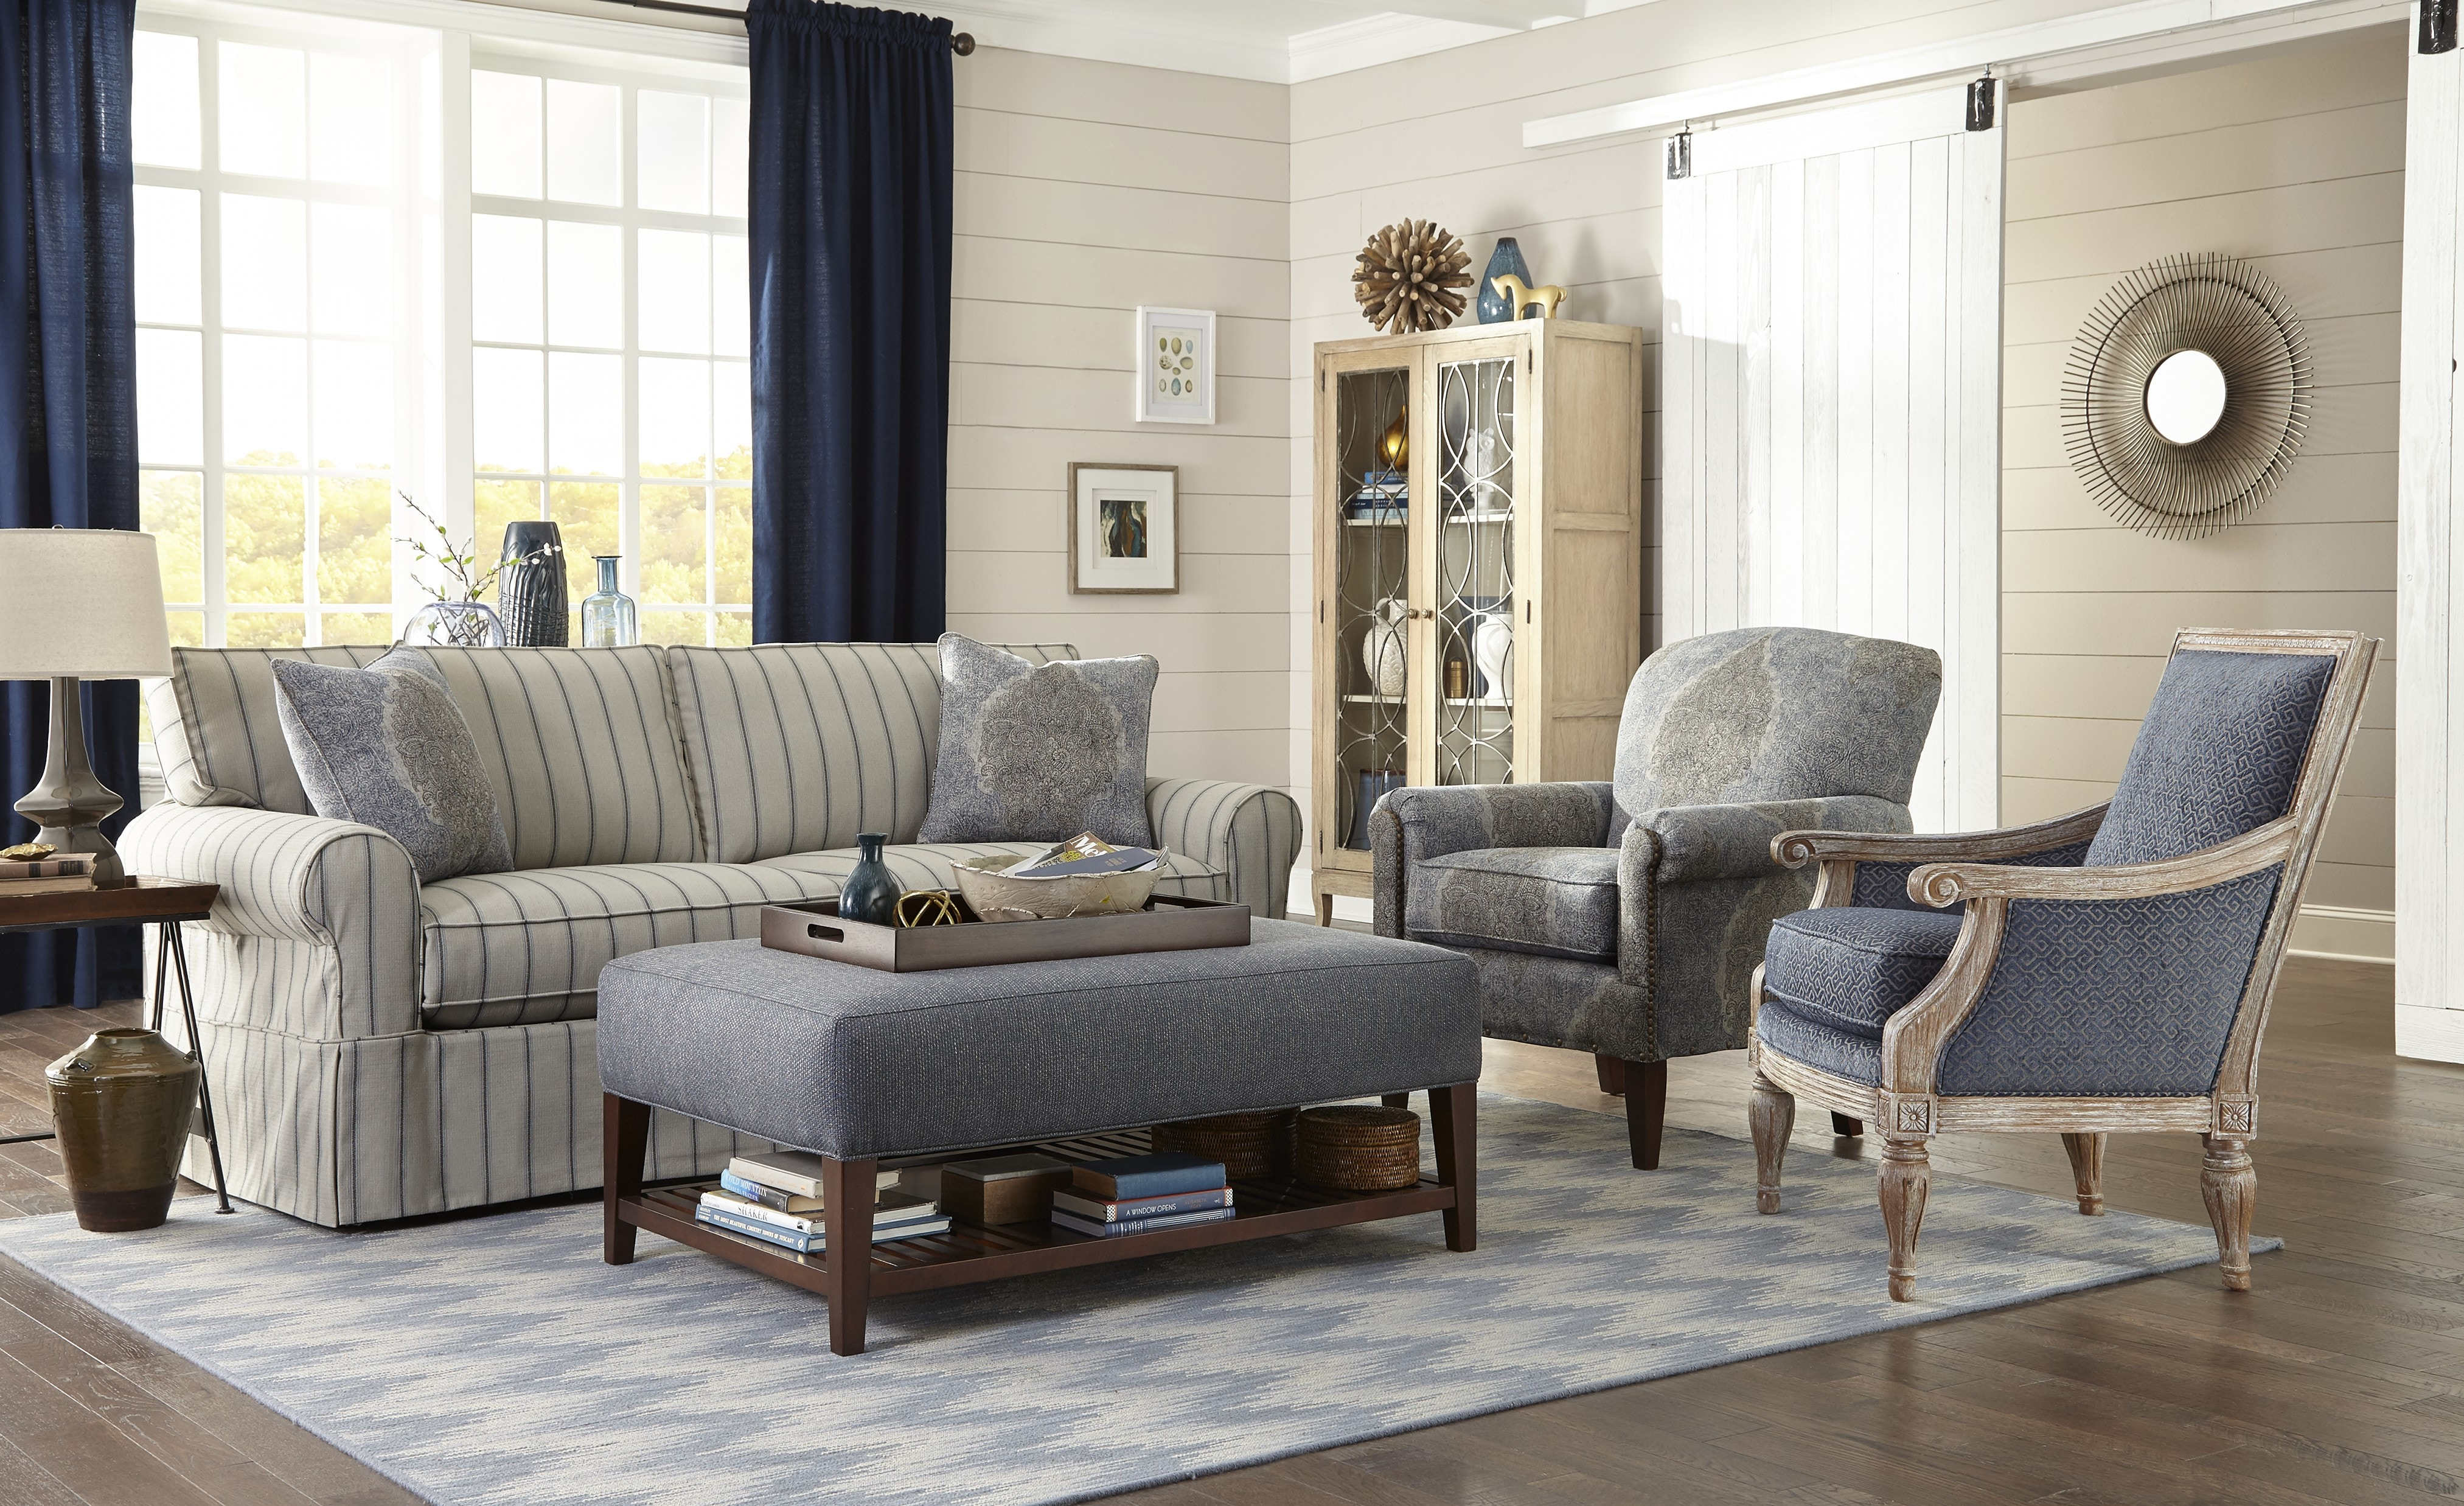 Craftmaster Sofa 922850 (Sleeper Also Available)